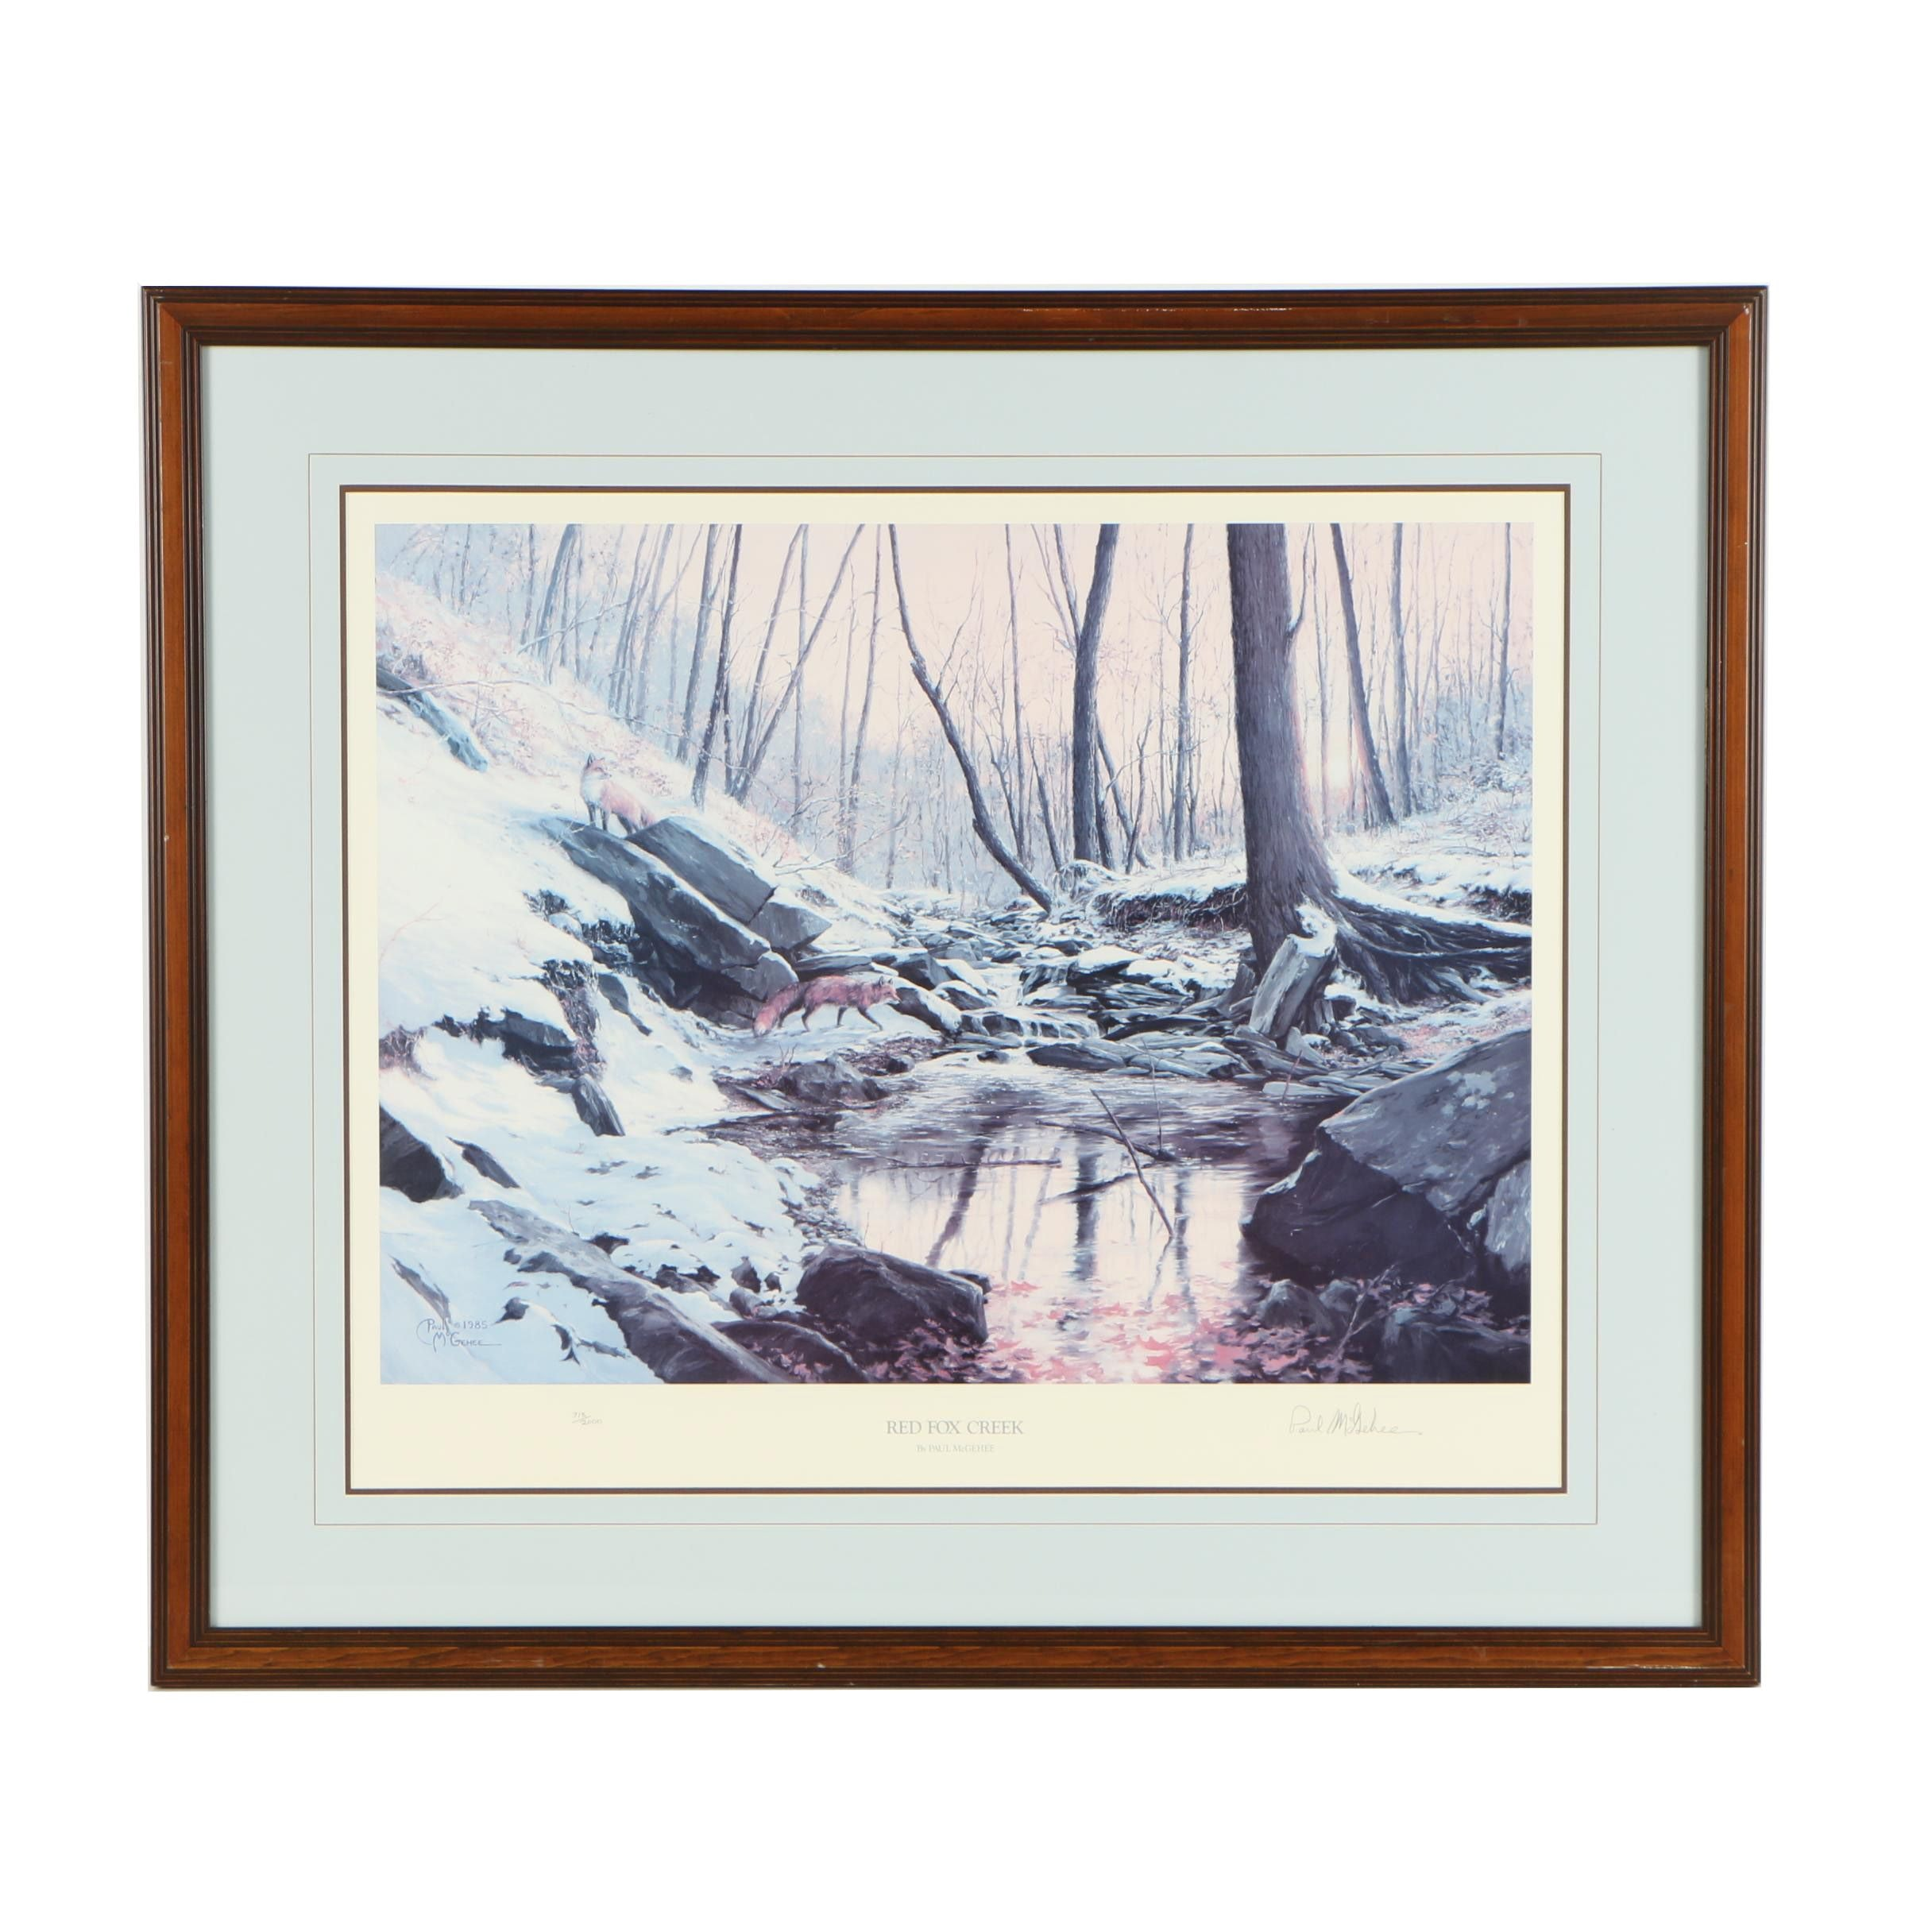 "Paul McGehee Offset Lithograph ""Red Fox Creek"""